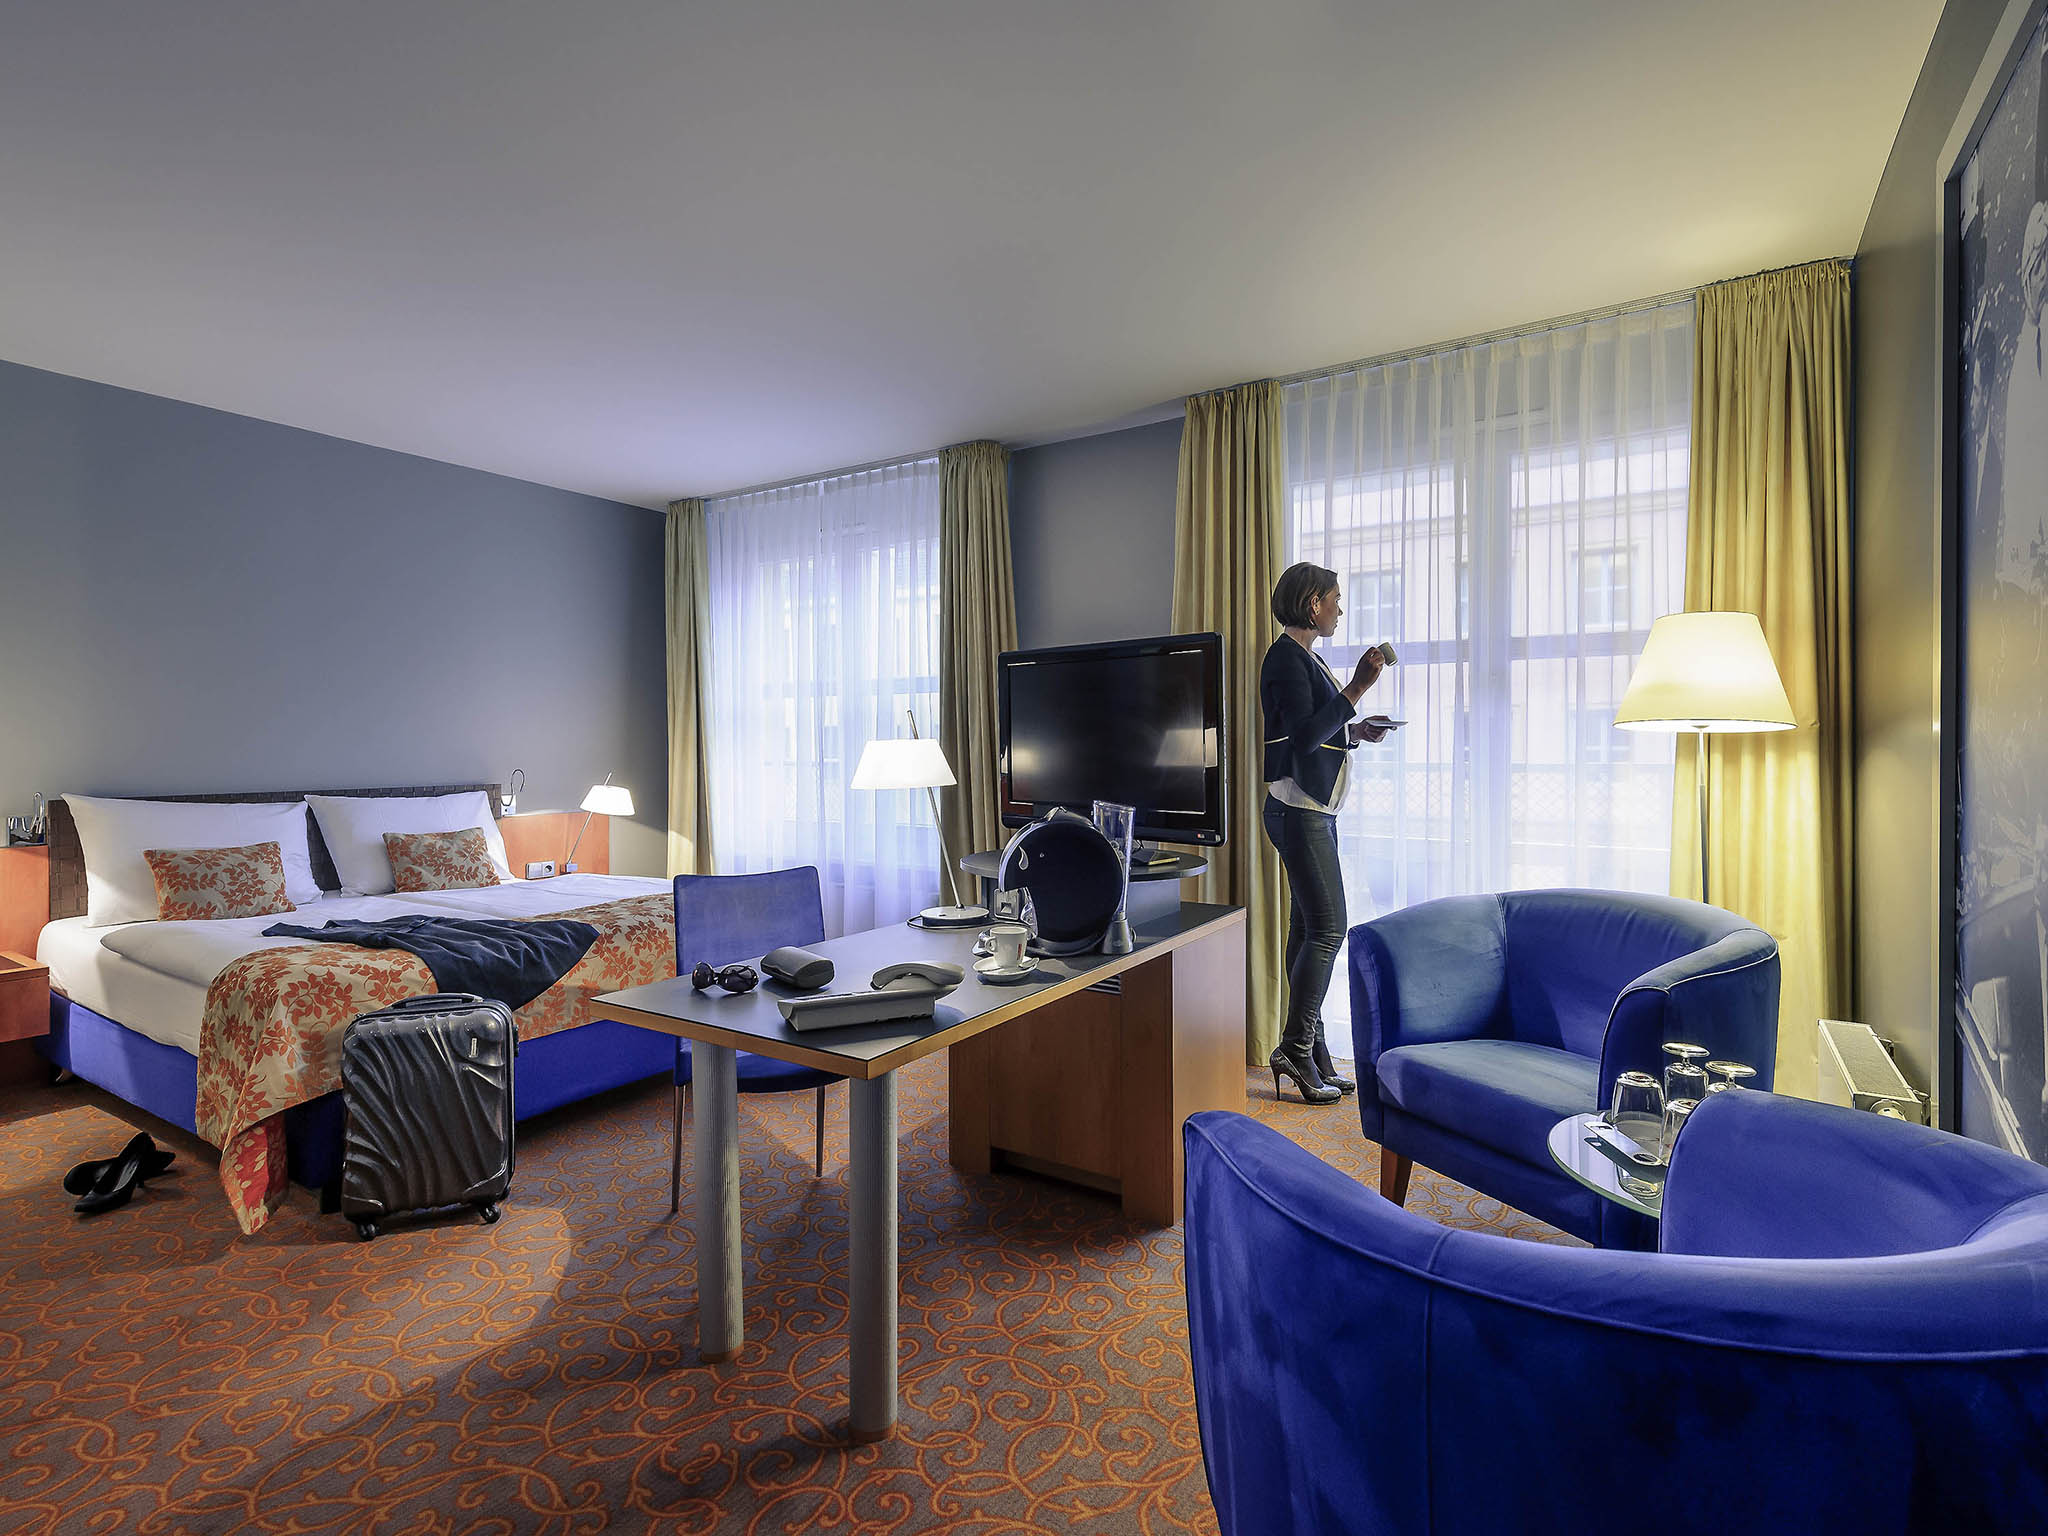 Design Len Berlin mercure hotel residenz berlin checkpoint wifi